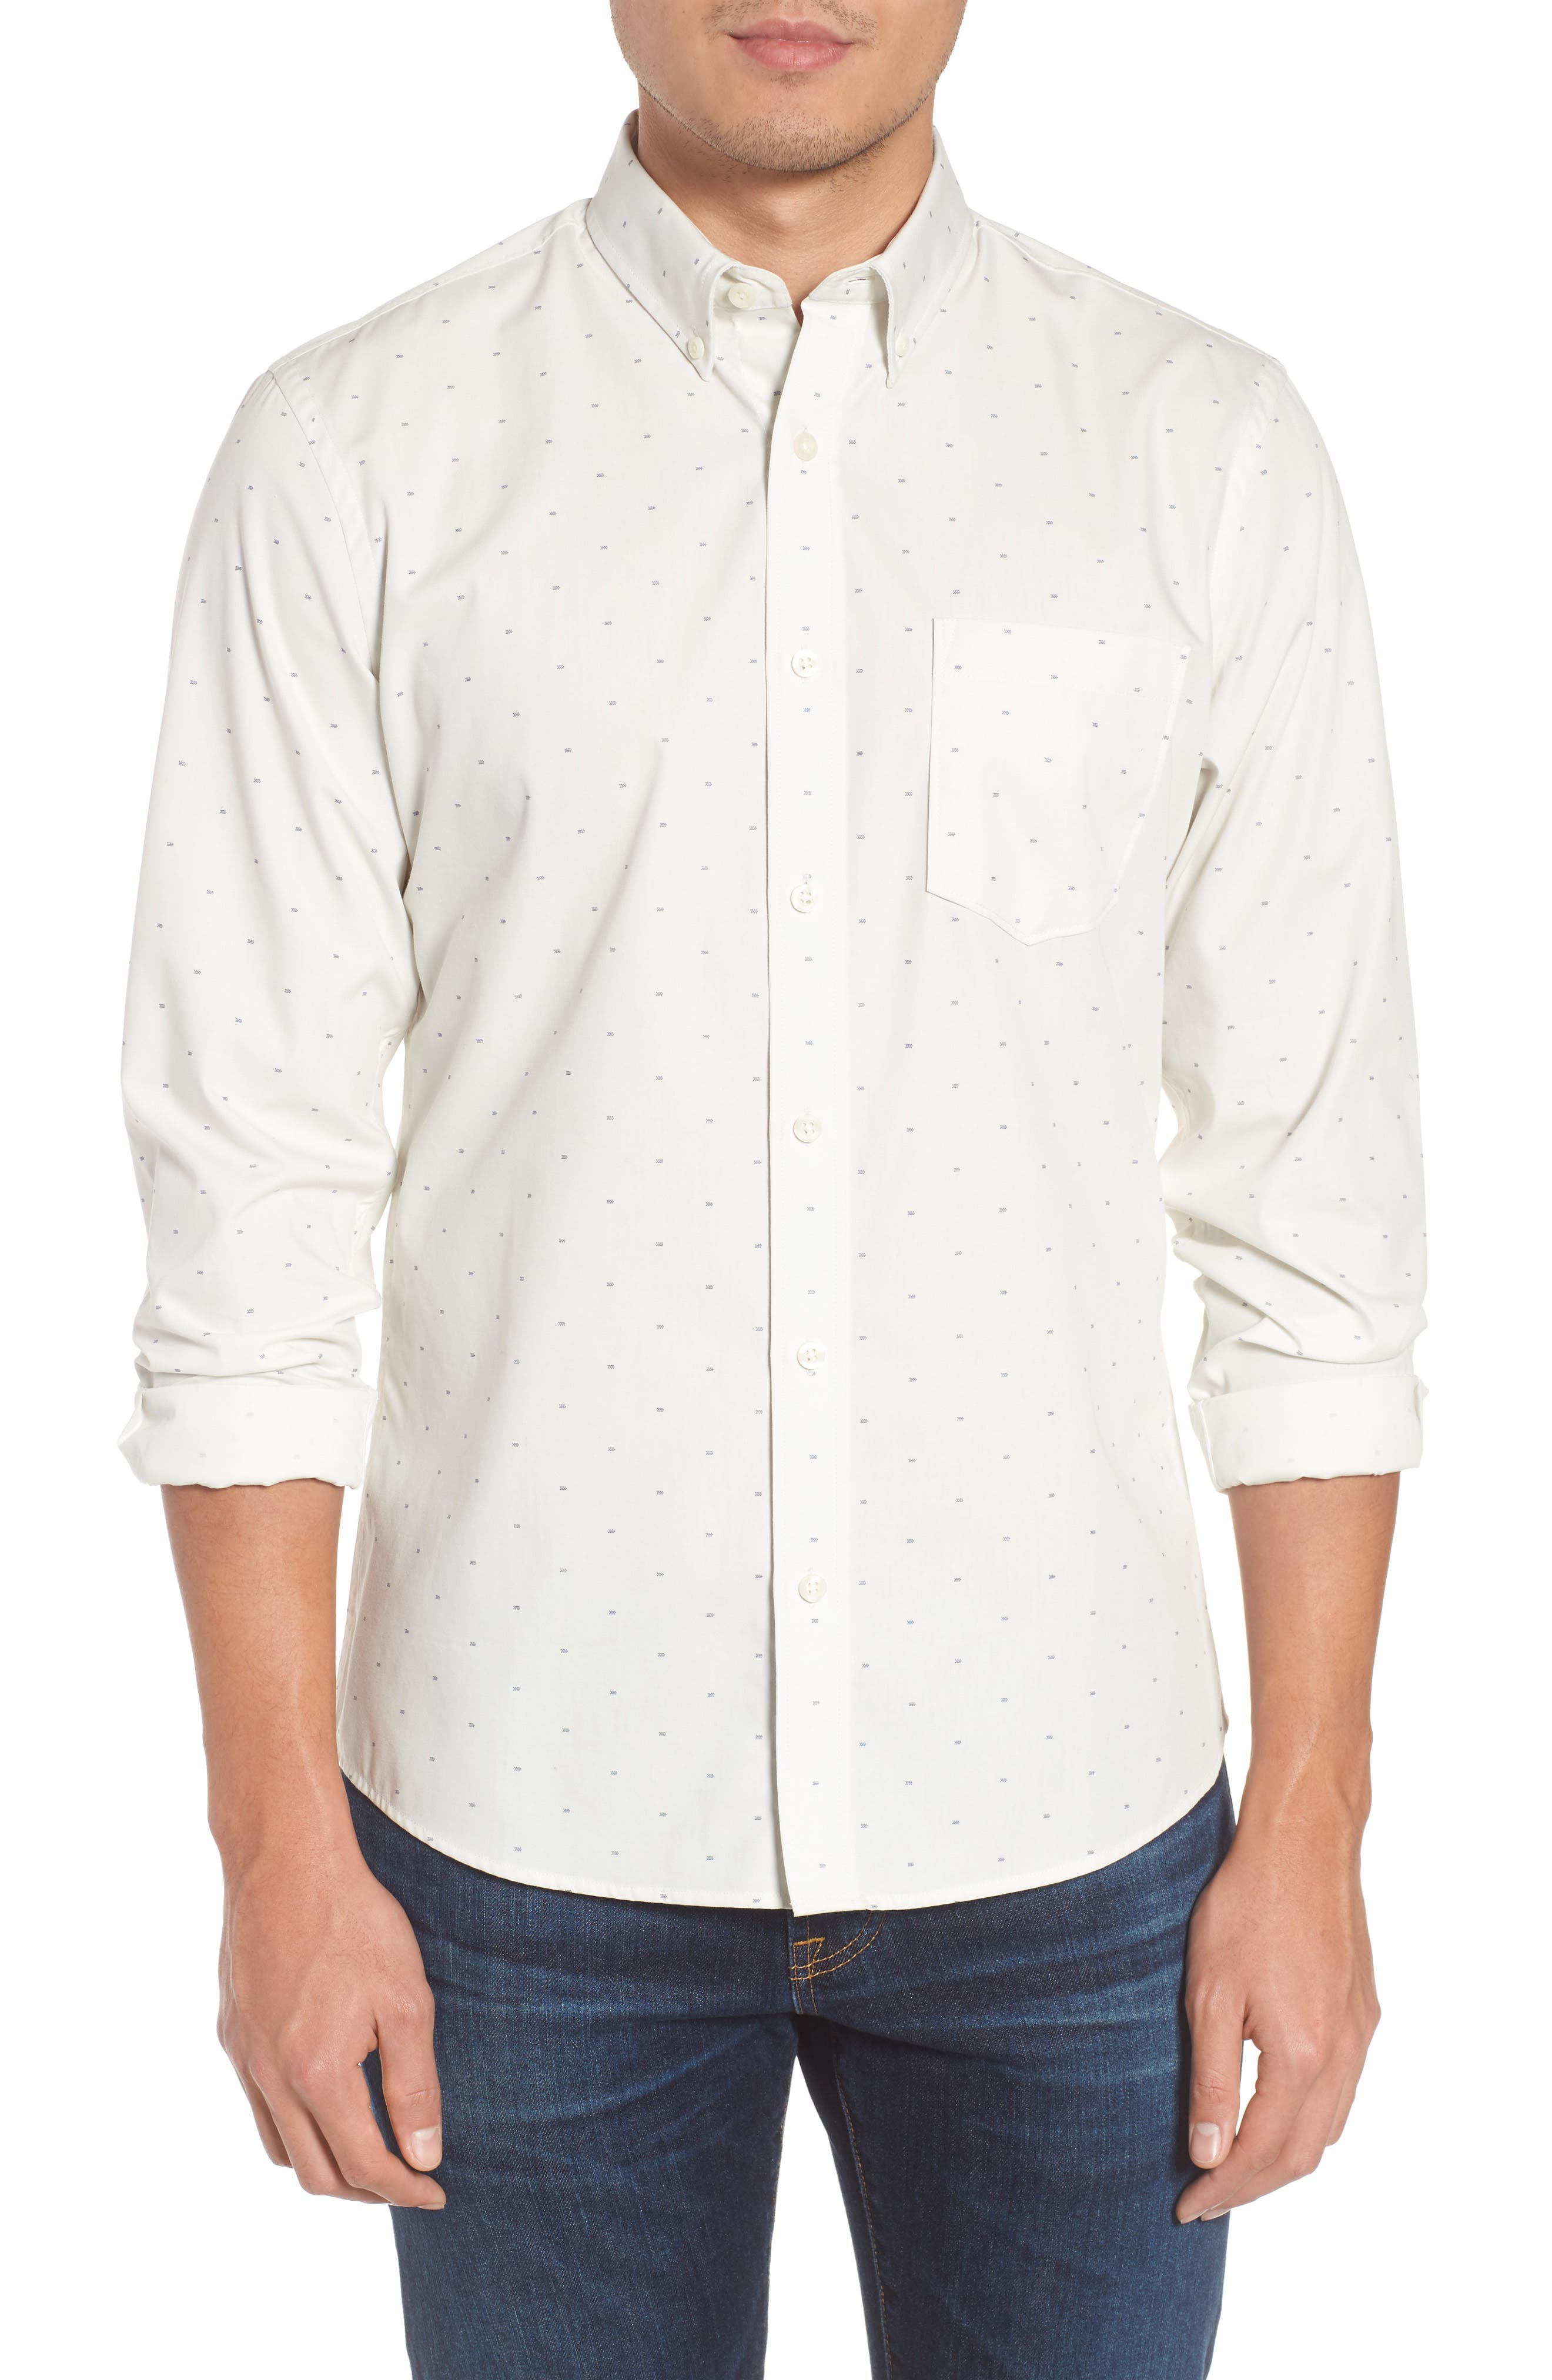 Alternate Image 1 Selected - Nordstrom Men's Shop Trim Fit Non-Iron Dobby Sport Shirt